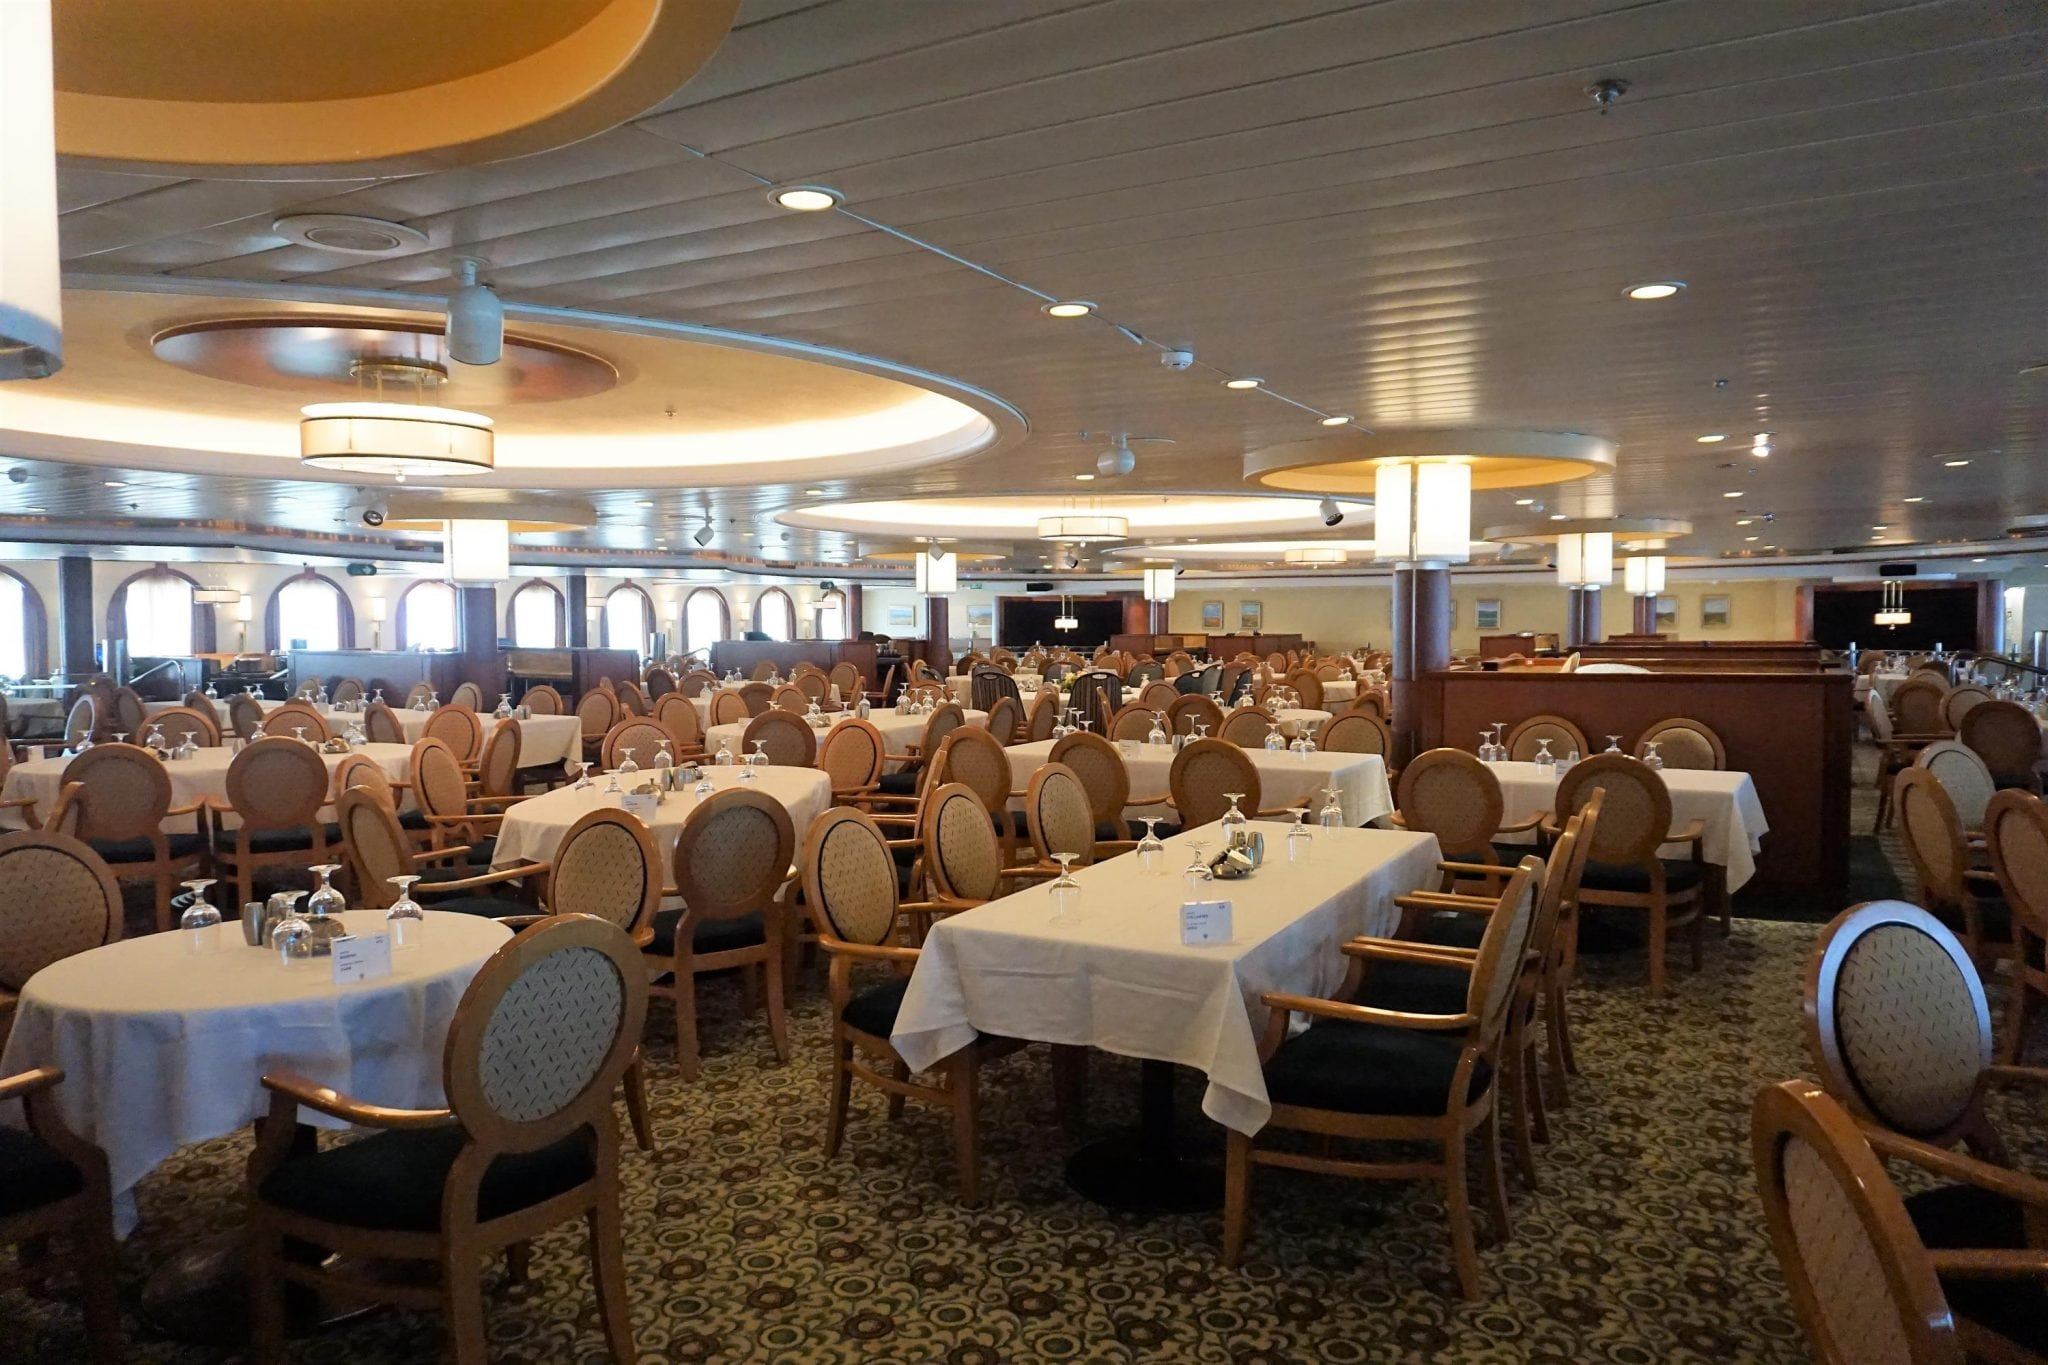 Main Dining Room on Majesty of the Seas